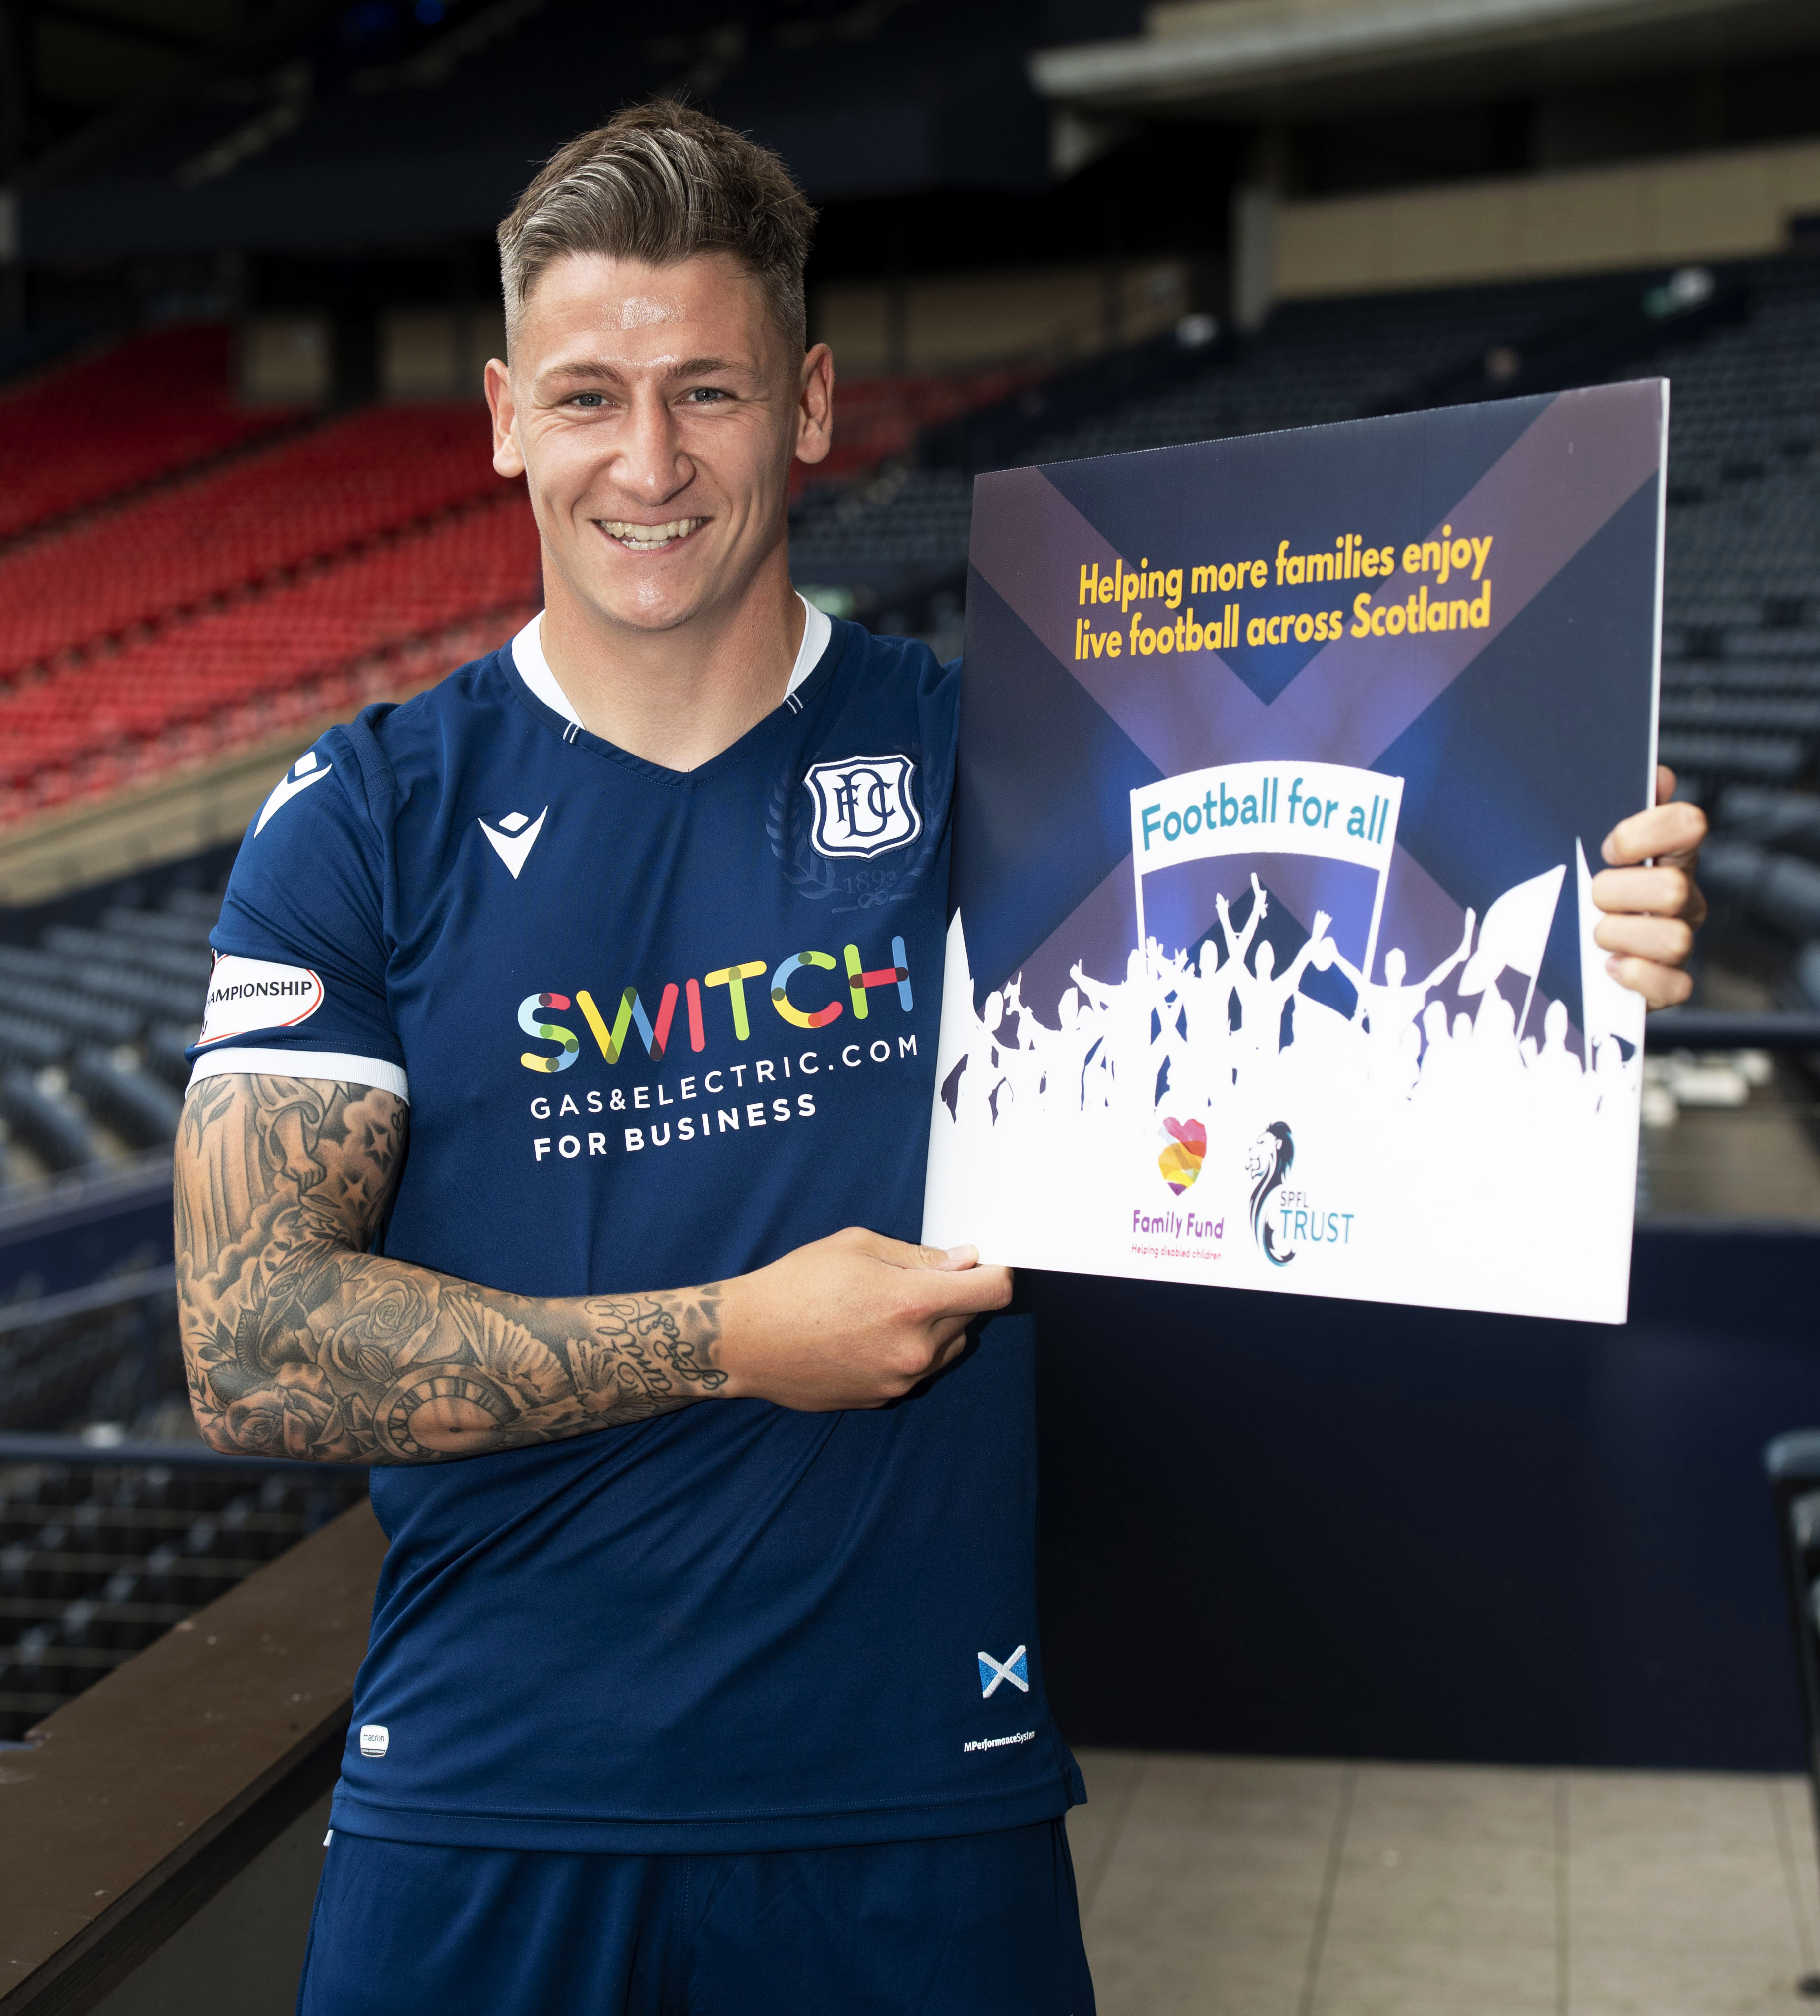 29/07/19 HAMPDEN PARK - GLASGOW Dundee's Josh Meekings at Hampden Park for the 2019/2020 Ladbrokes Championship Captains Photocall.